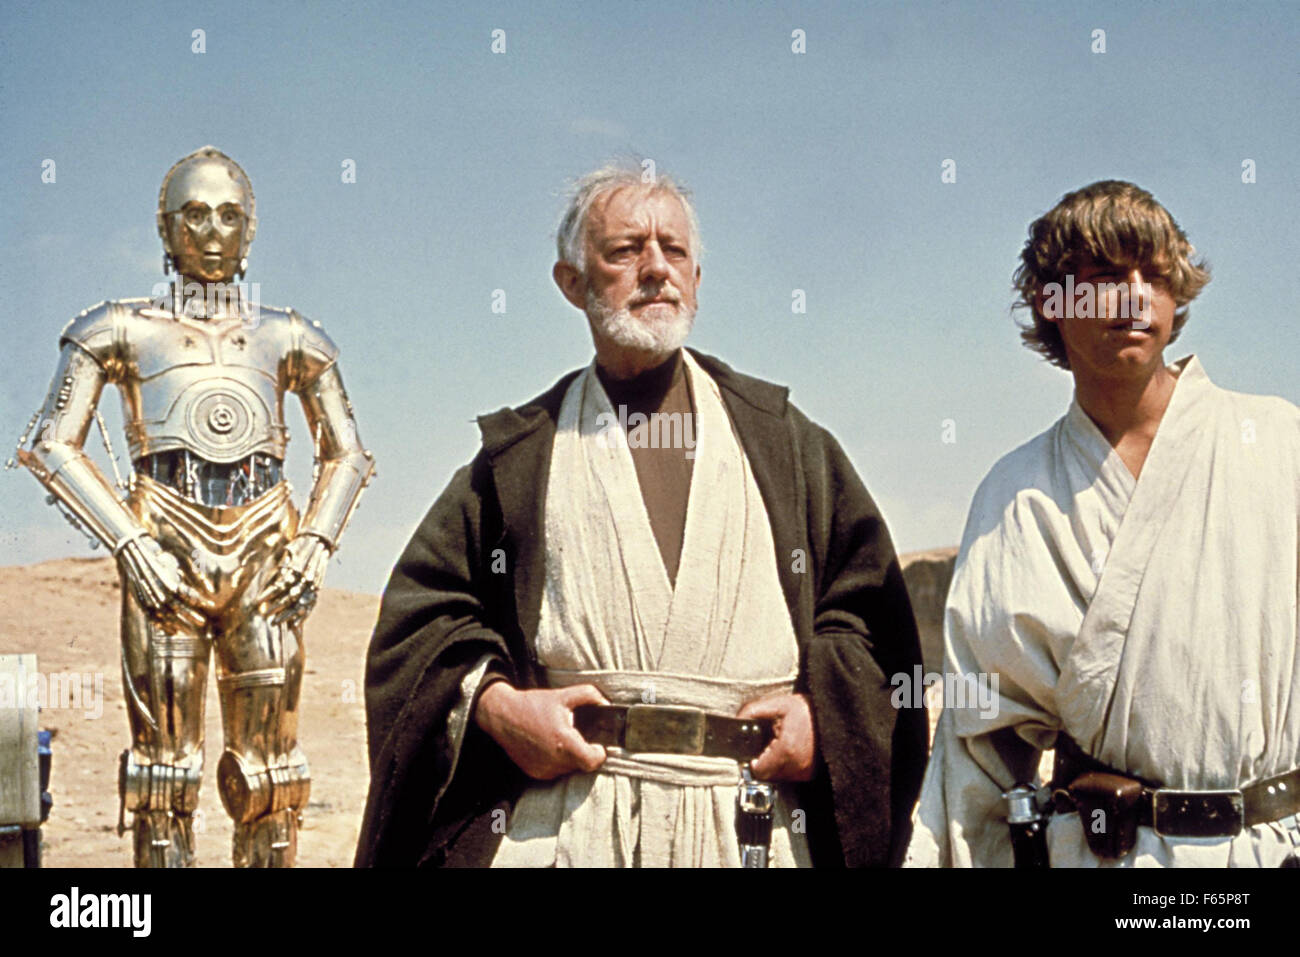 Star Wars: Episode IV - A New Hope Year : 1977 USA Director : George Lucas Alec Guinness, Mark Hamill, Anthony Daniels - Stock Image